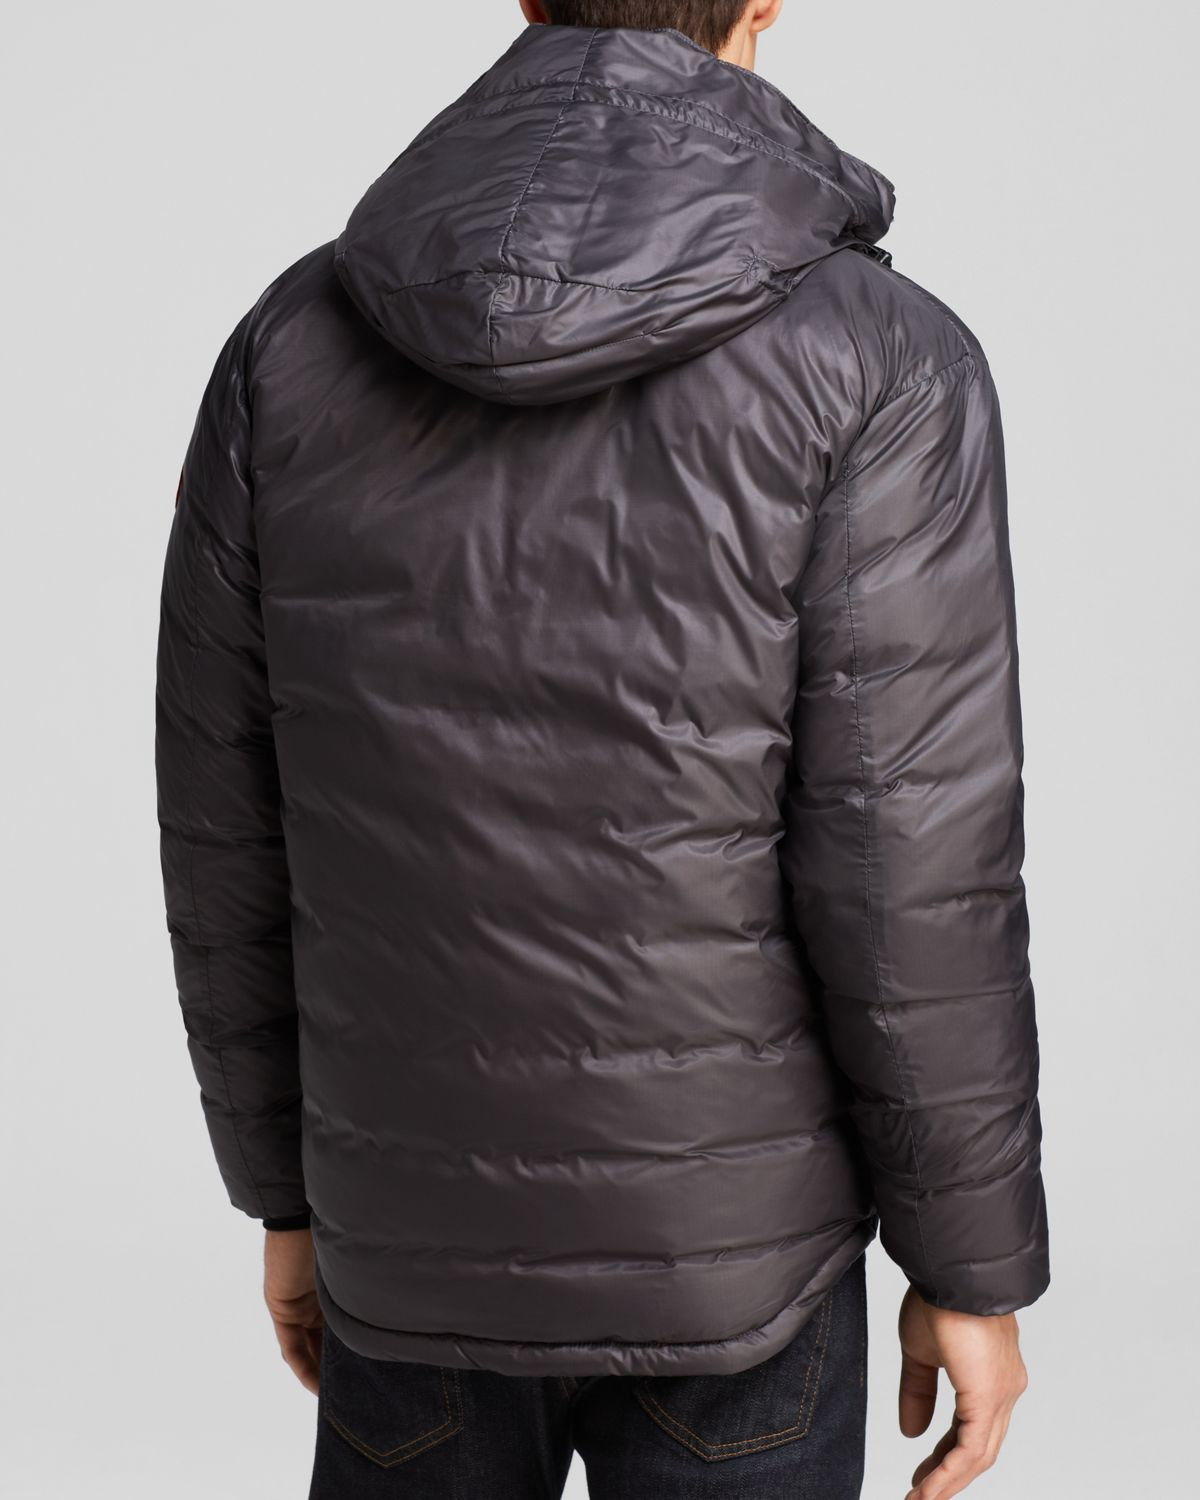 lyst canada goose lodge hooded down jacket in gray for men. Black Bedroom Furniture Sets. Home Design Ideas